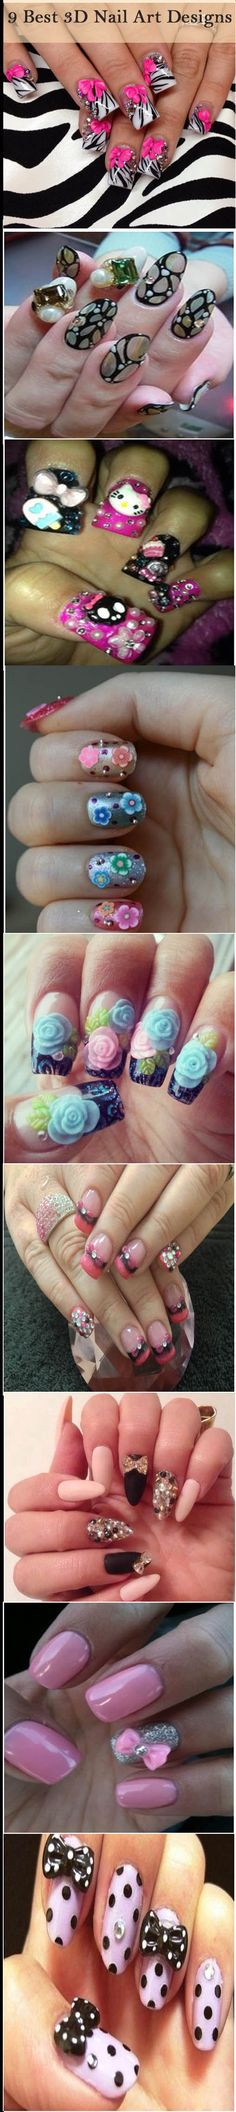 9 Best 3D Nail Art Designs   See more nail designs at http://www.nailsss.com/french-nails/2/